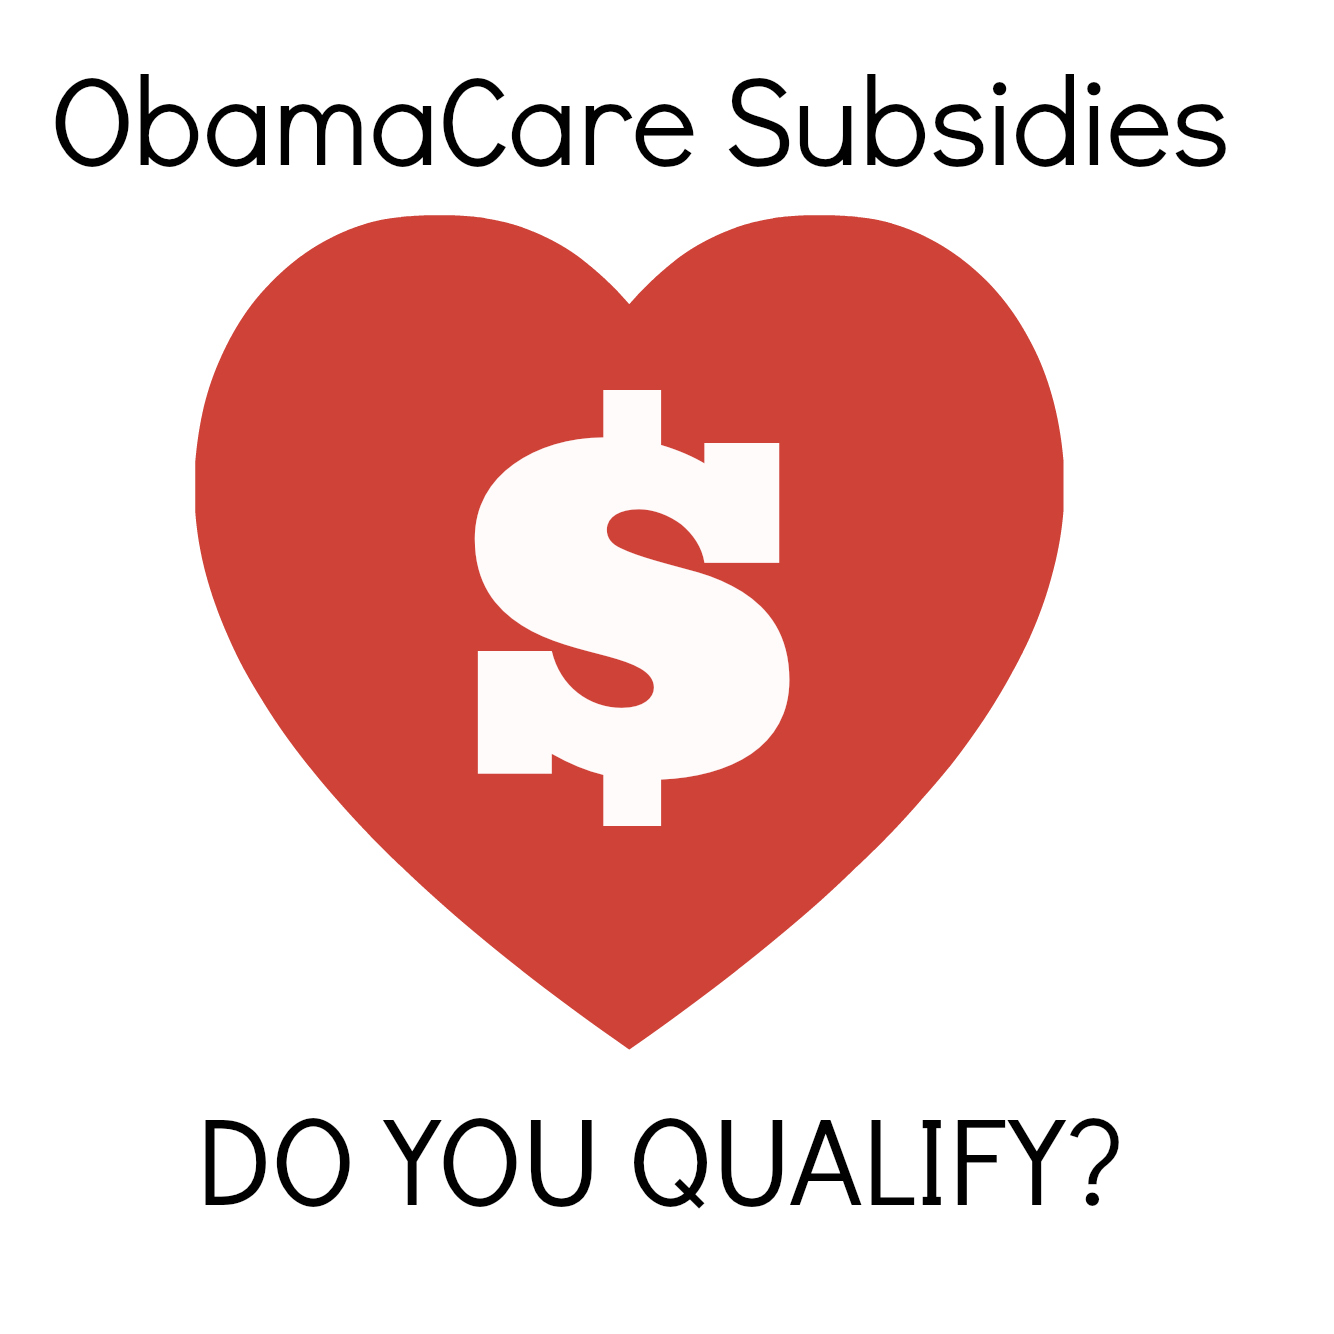 5 Tips for Understanding ObamaCare Subsidies